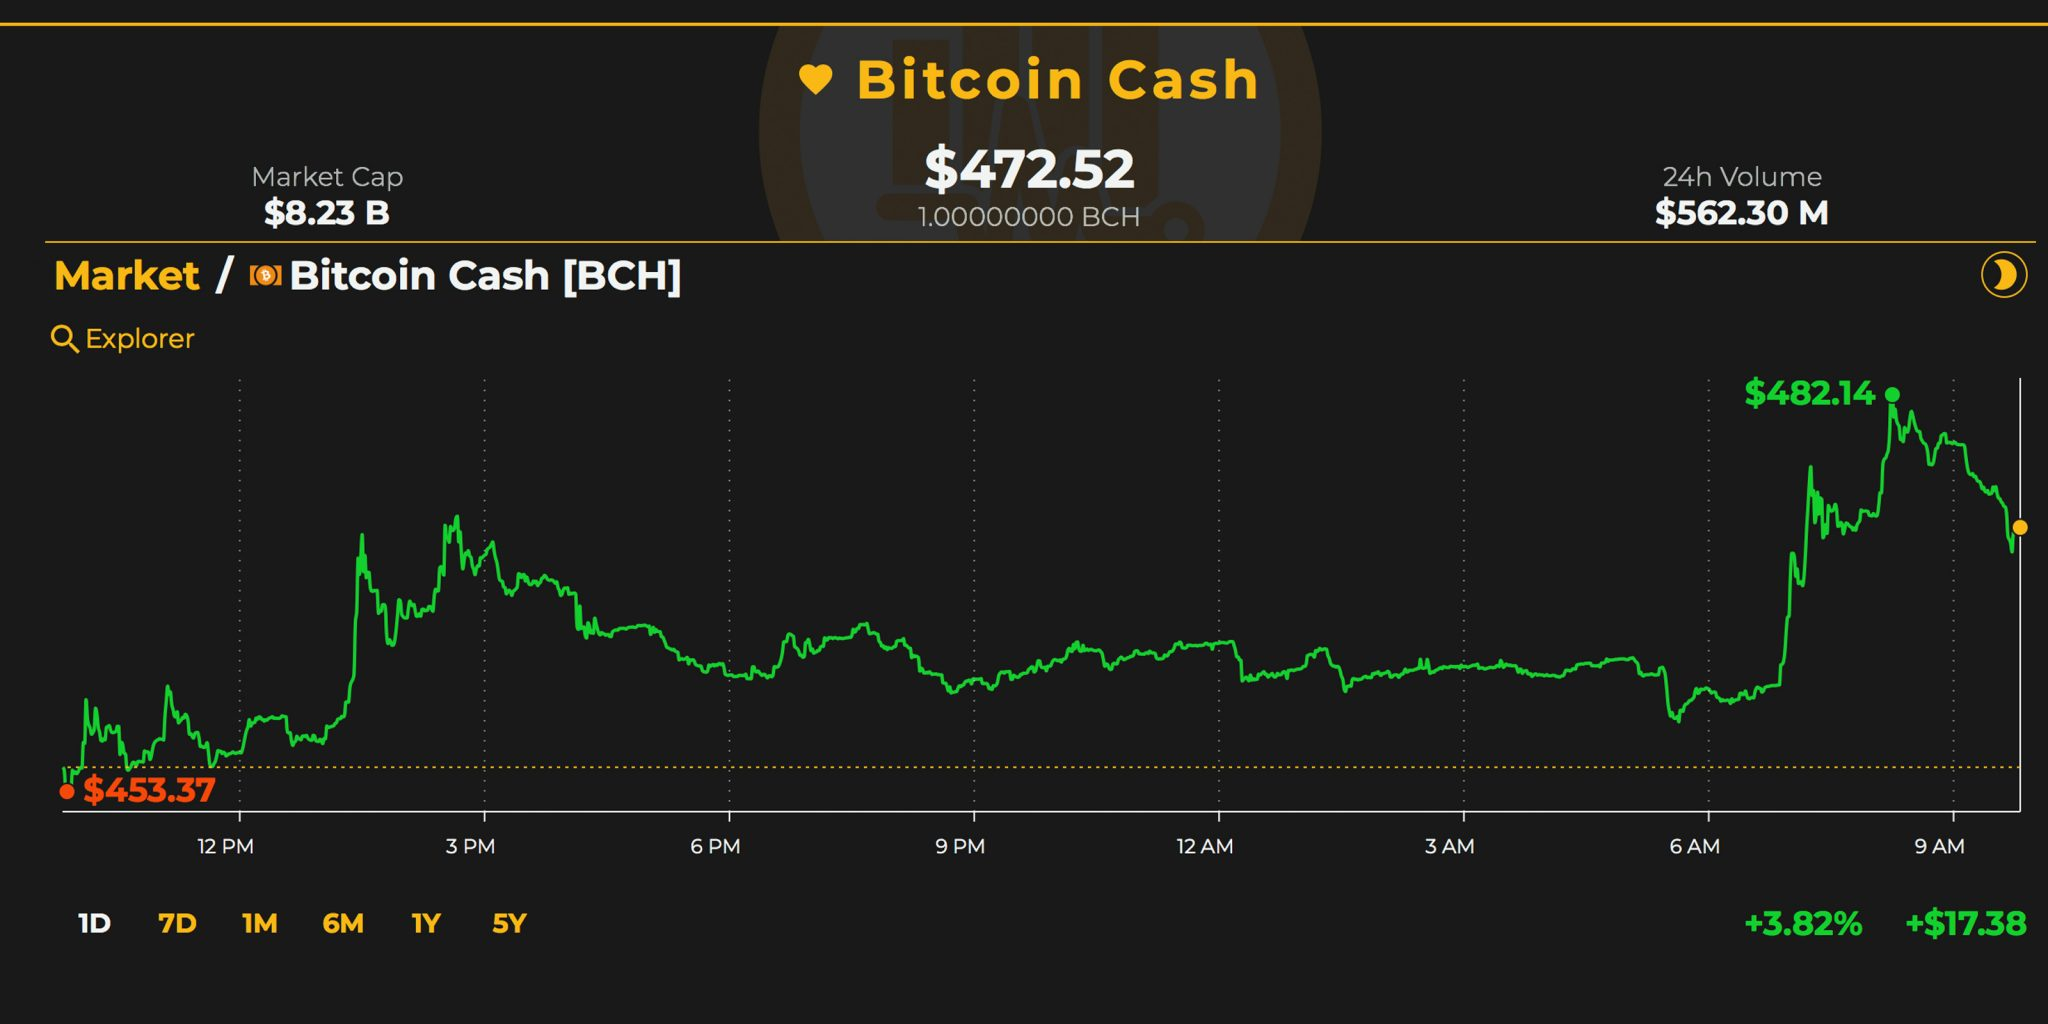 Markets Update: Bitcoin Cash Prices See Steady Gains Over the Last Two Days